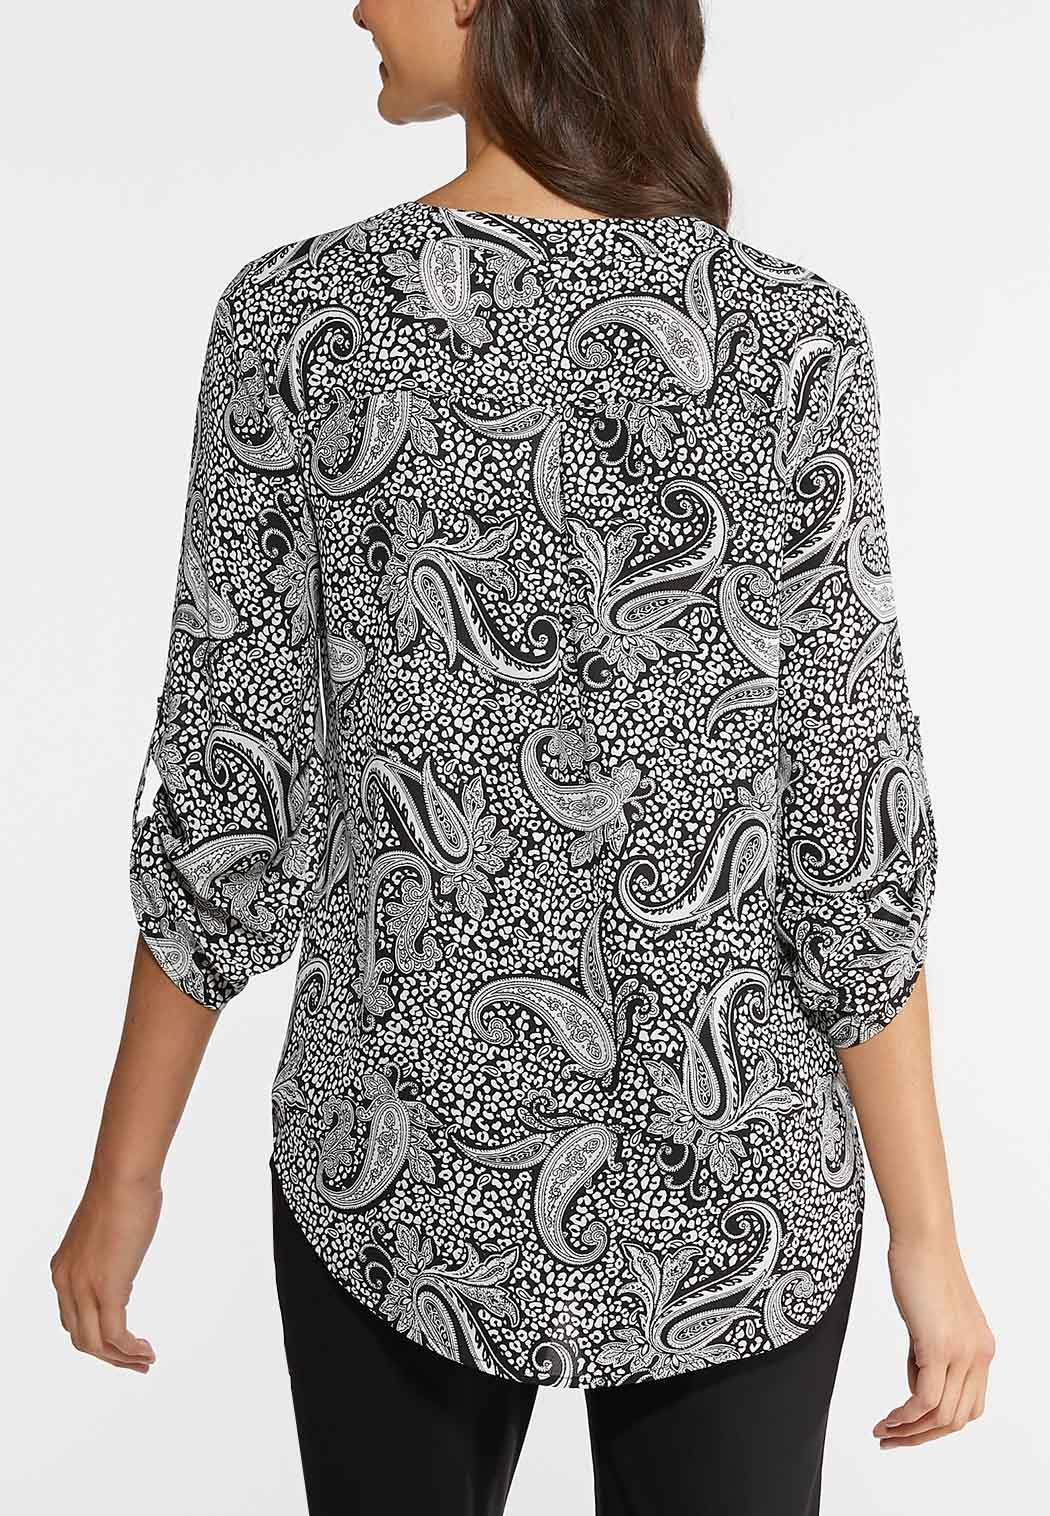 Black And White Paisley Top (Item #43883712)